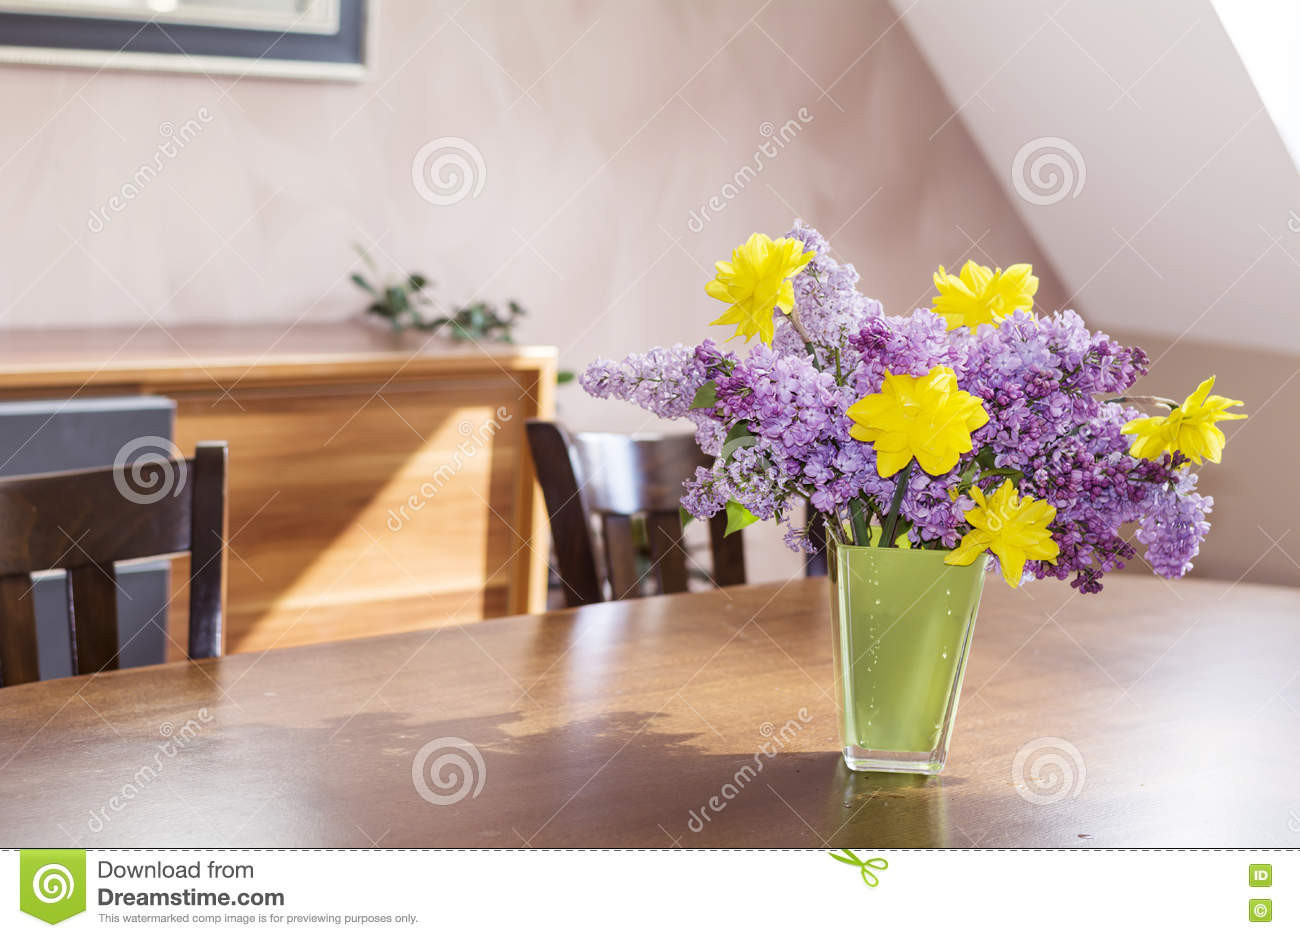 glass vase with iron stand of 10 best of wooden flower vase stand bogekompresorturkiye com regarding download yellow narcissus flowers and lilac in a green glass vase a wooden table stock